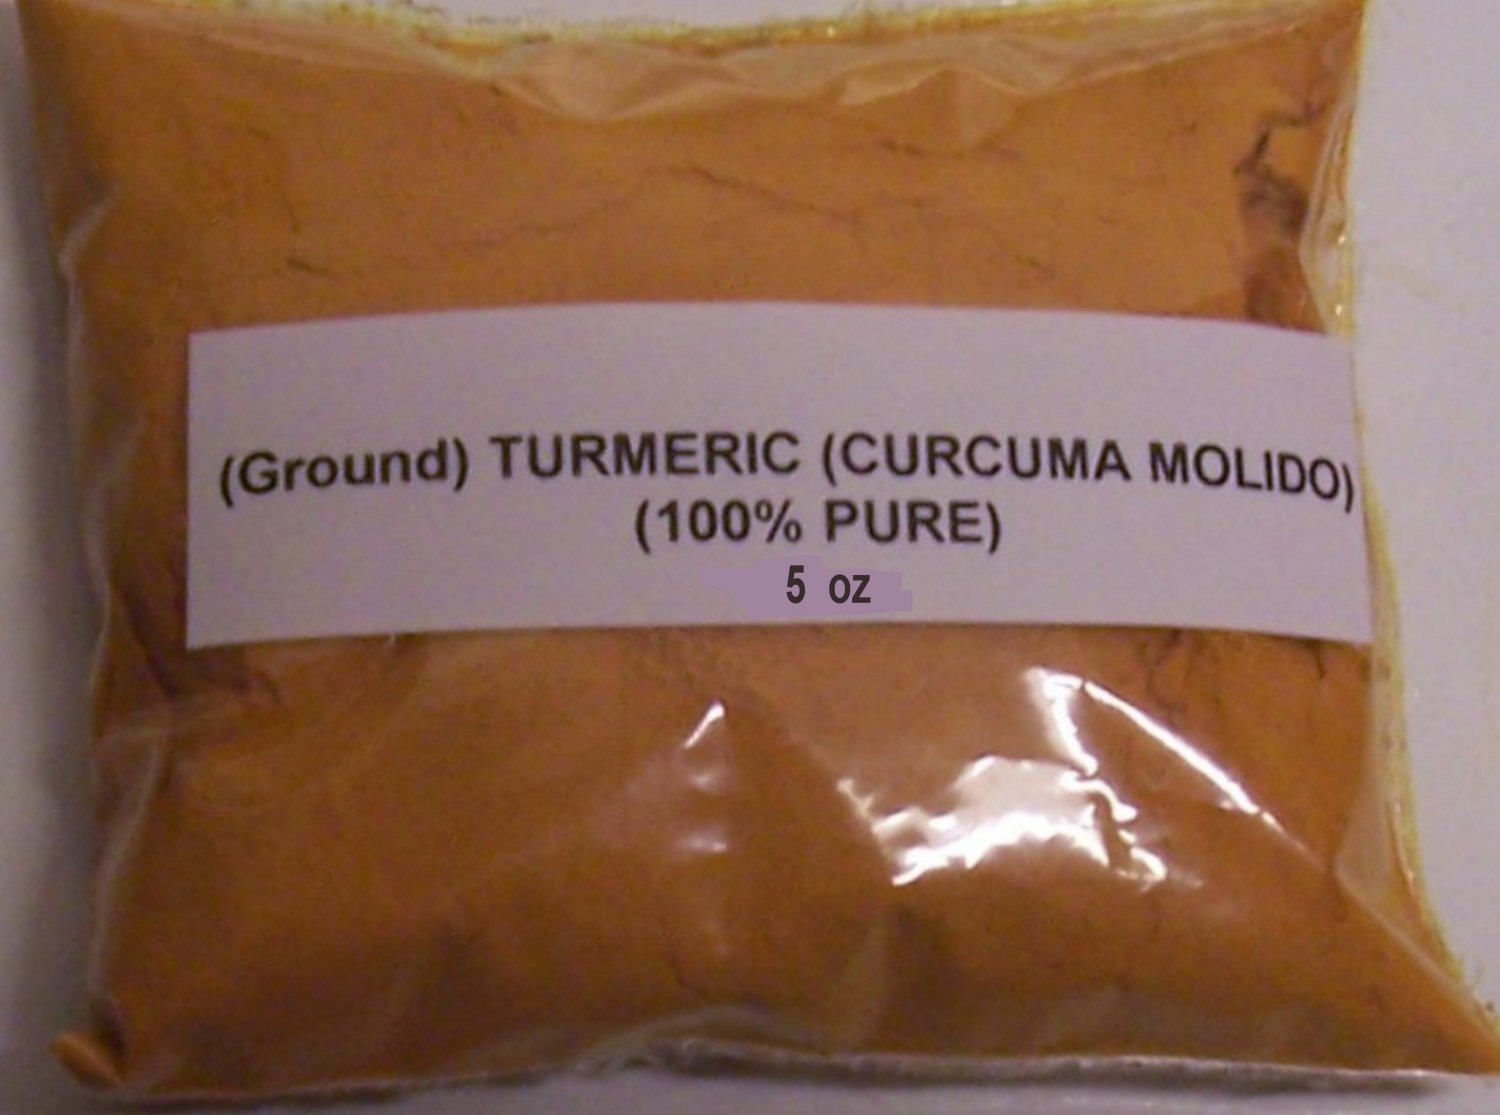 5 oz (140 grams) Ground Turmeric (Tumeric) POWDER Curcuma Molido, Gauri, Hald,i Indian Saffron